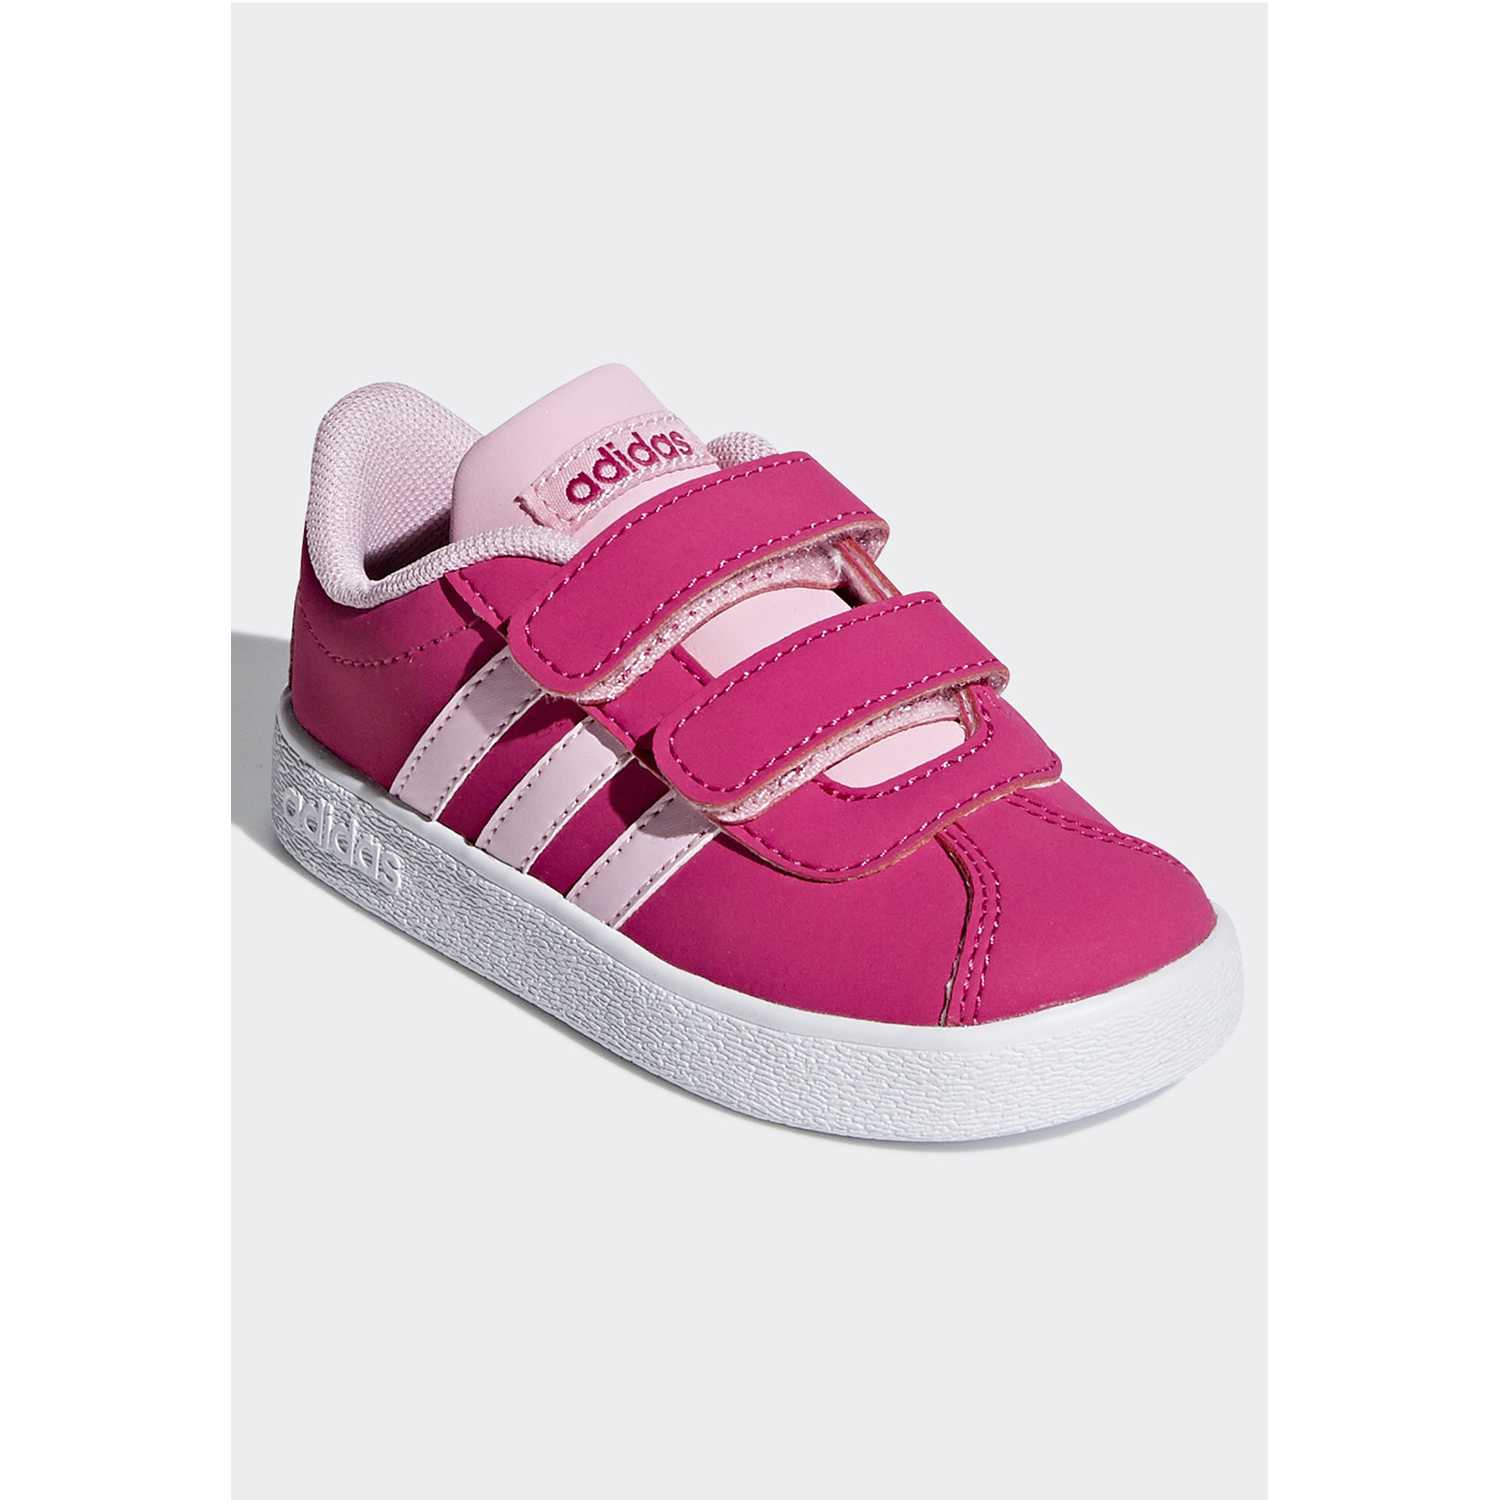 Adidas vl court 2.0 cmf i Fucsia / blanco Walking